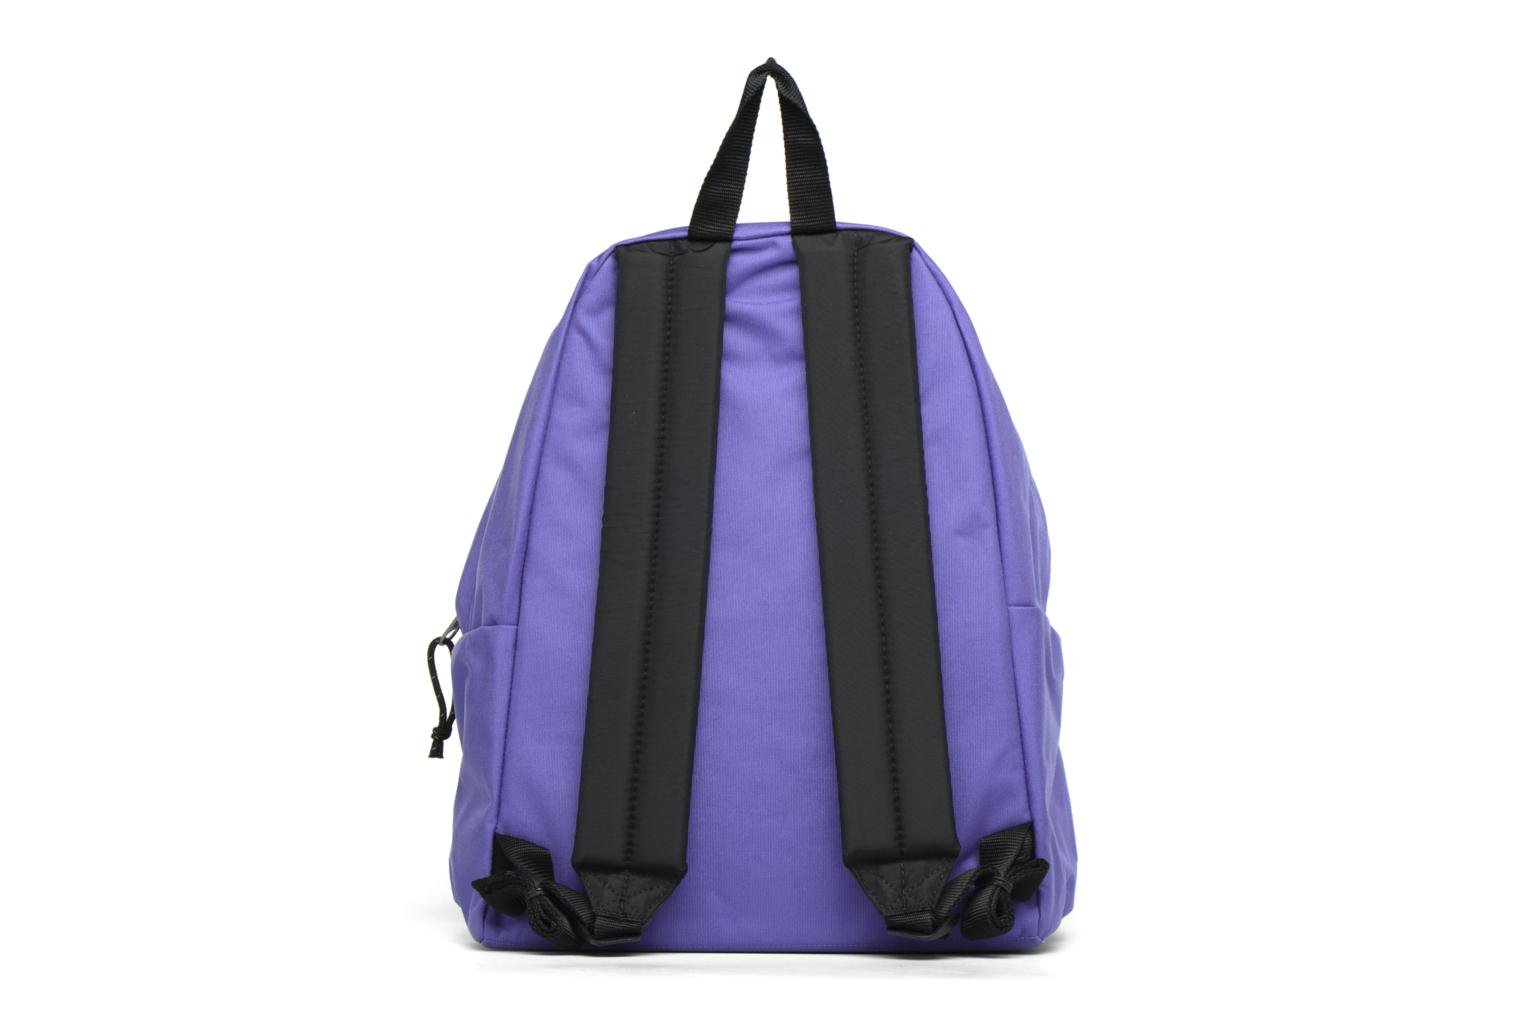 PADDED PACK'R Sac à dos toile Insulate Purple